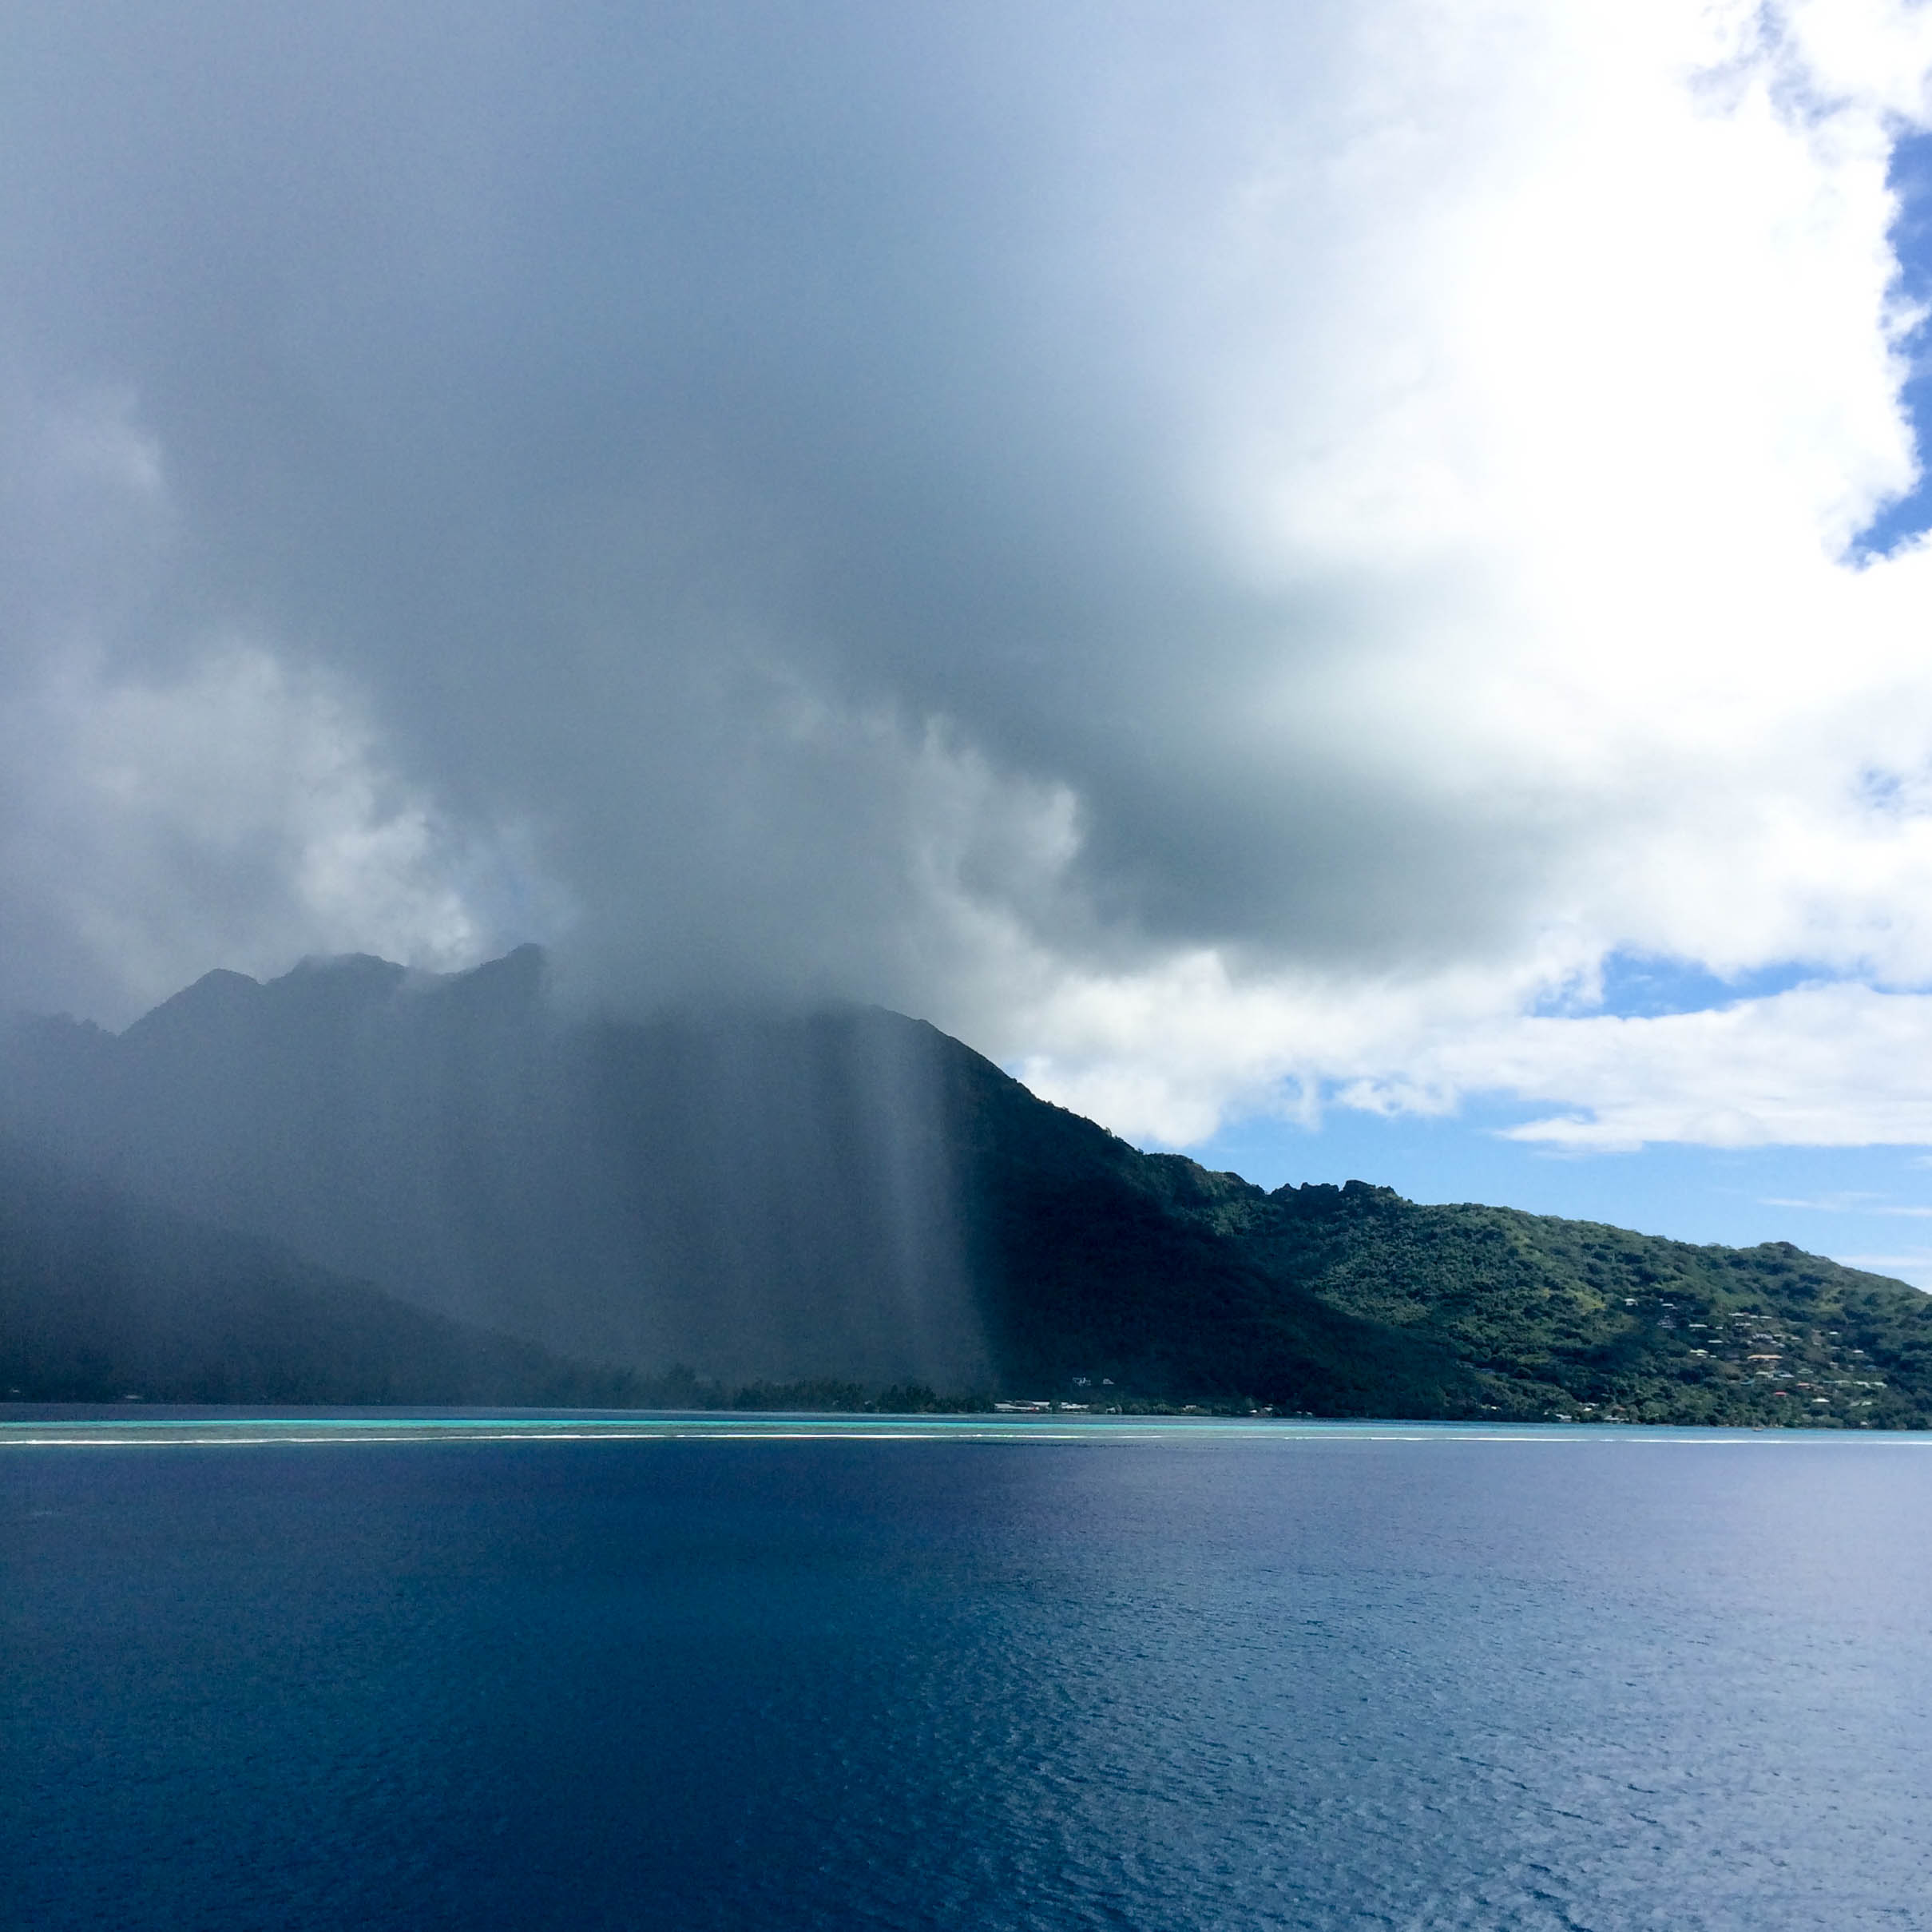 heading into rain moorea